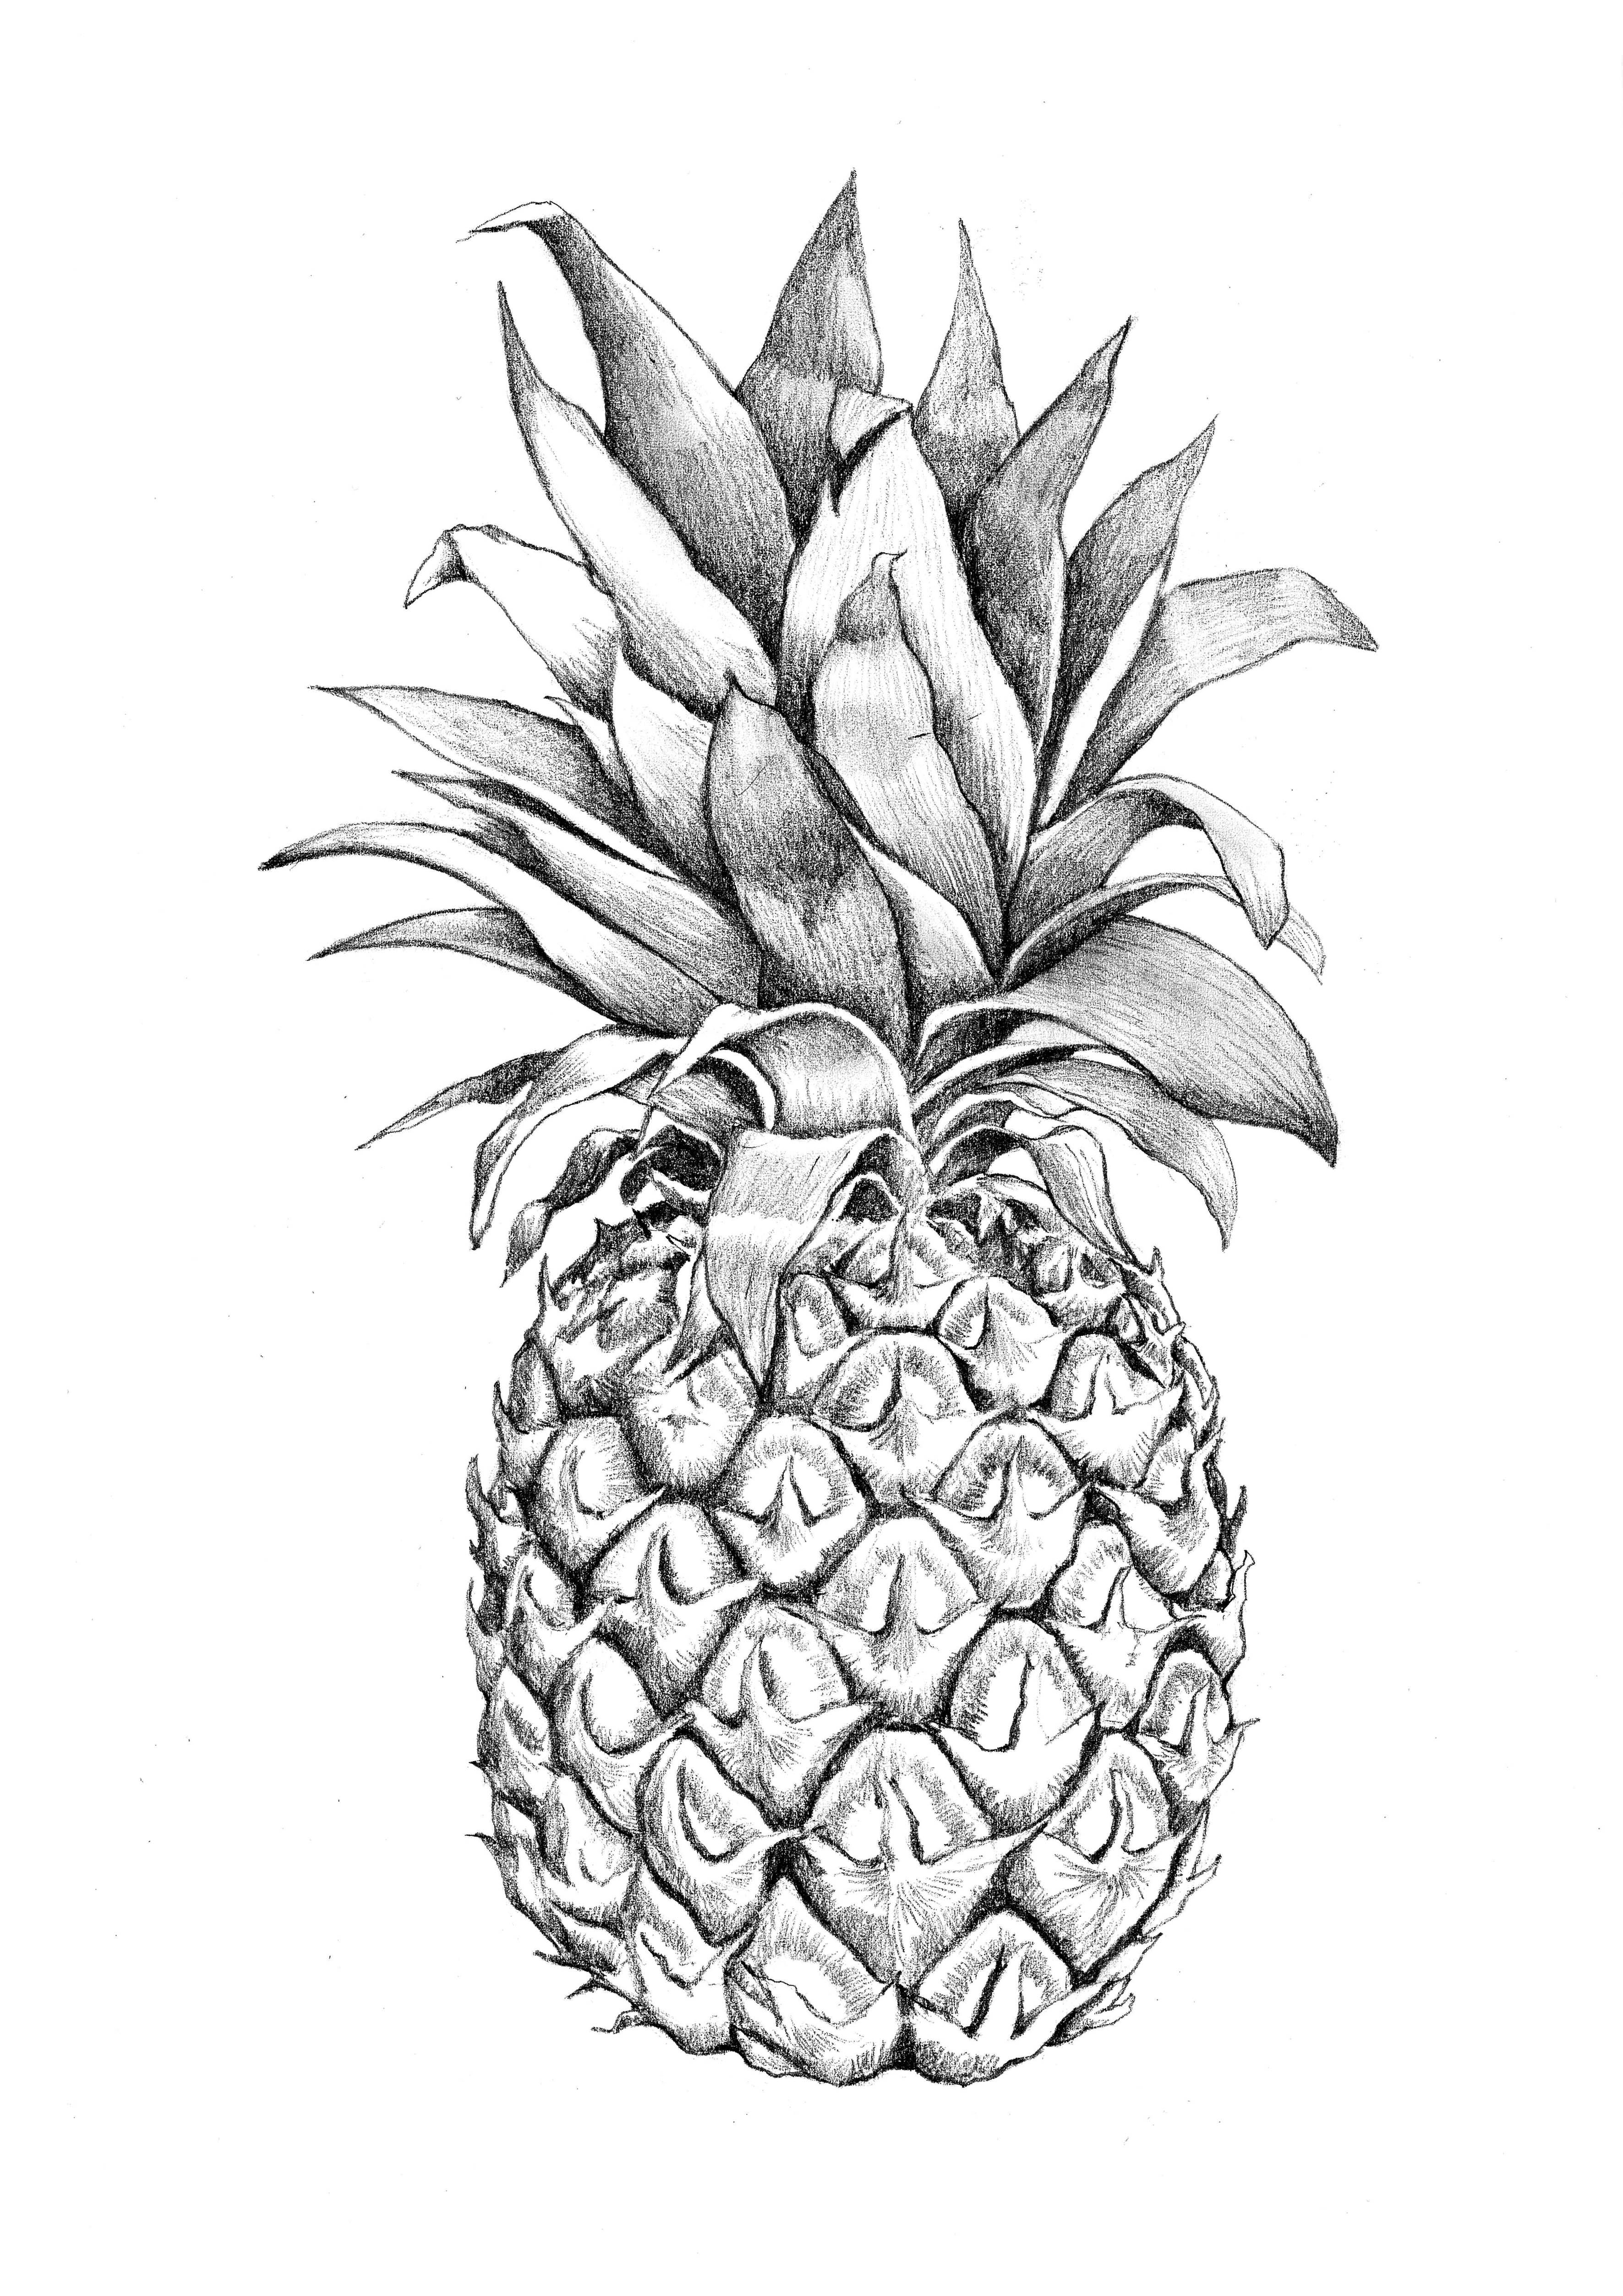 pineapple line drawing images for gt pineapple graphic design pineapple drawing pineapple line drawing